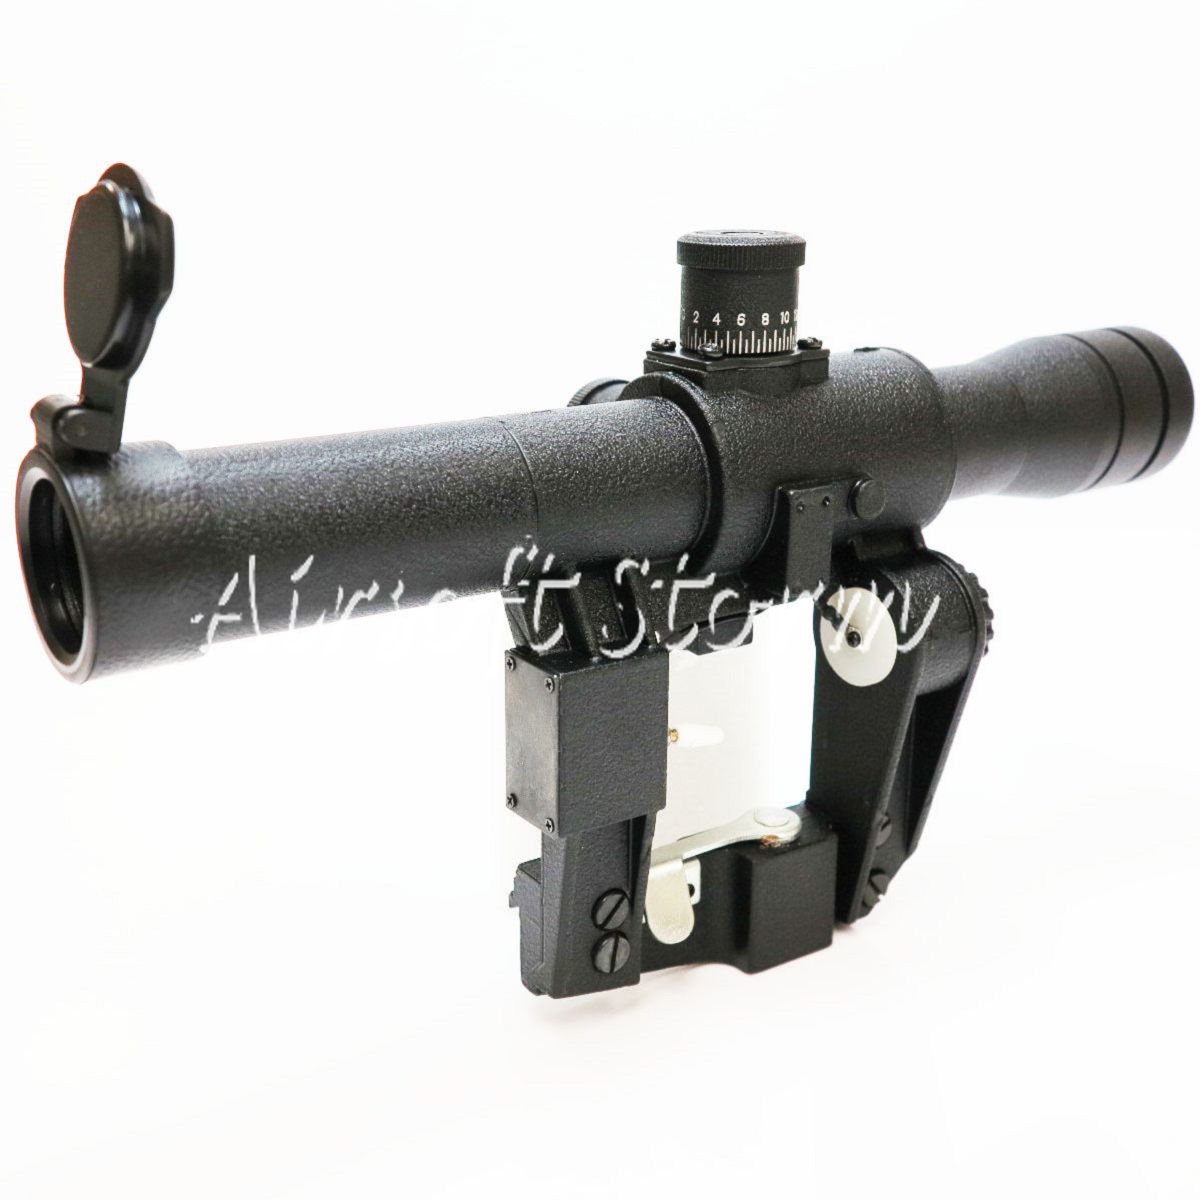 SWAT Gear Tactical 4x26 Red Illuminated Scope For VSS Series Airsoft Rifle SEAF45